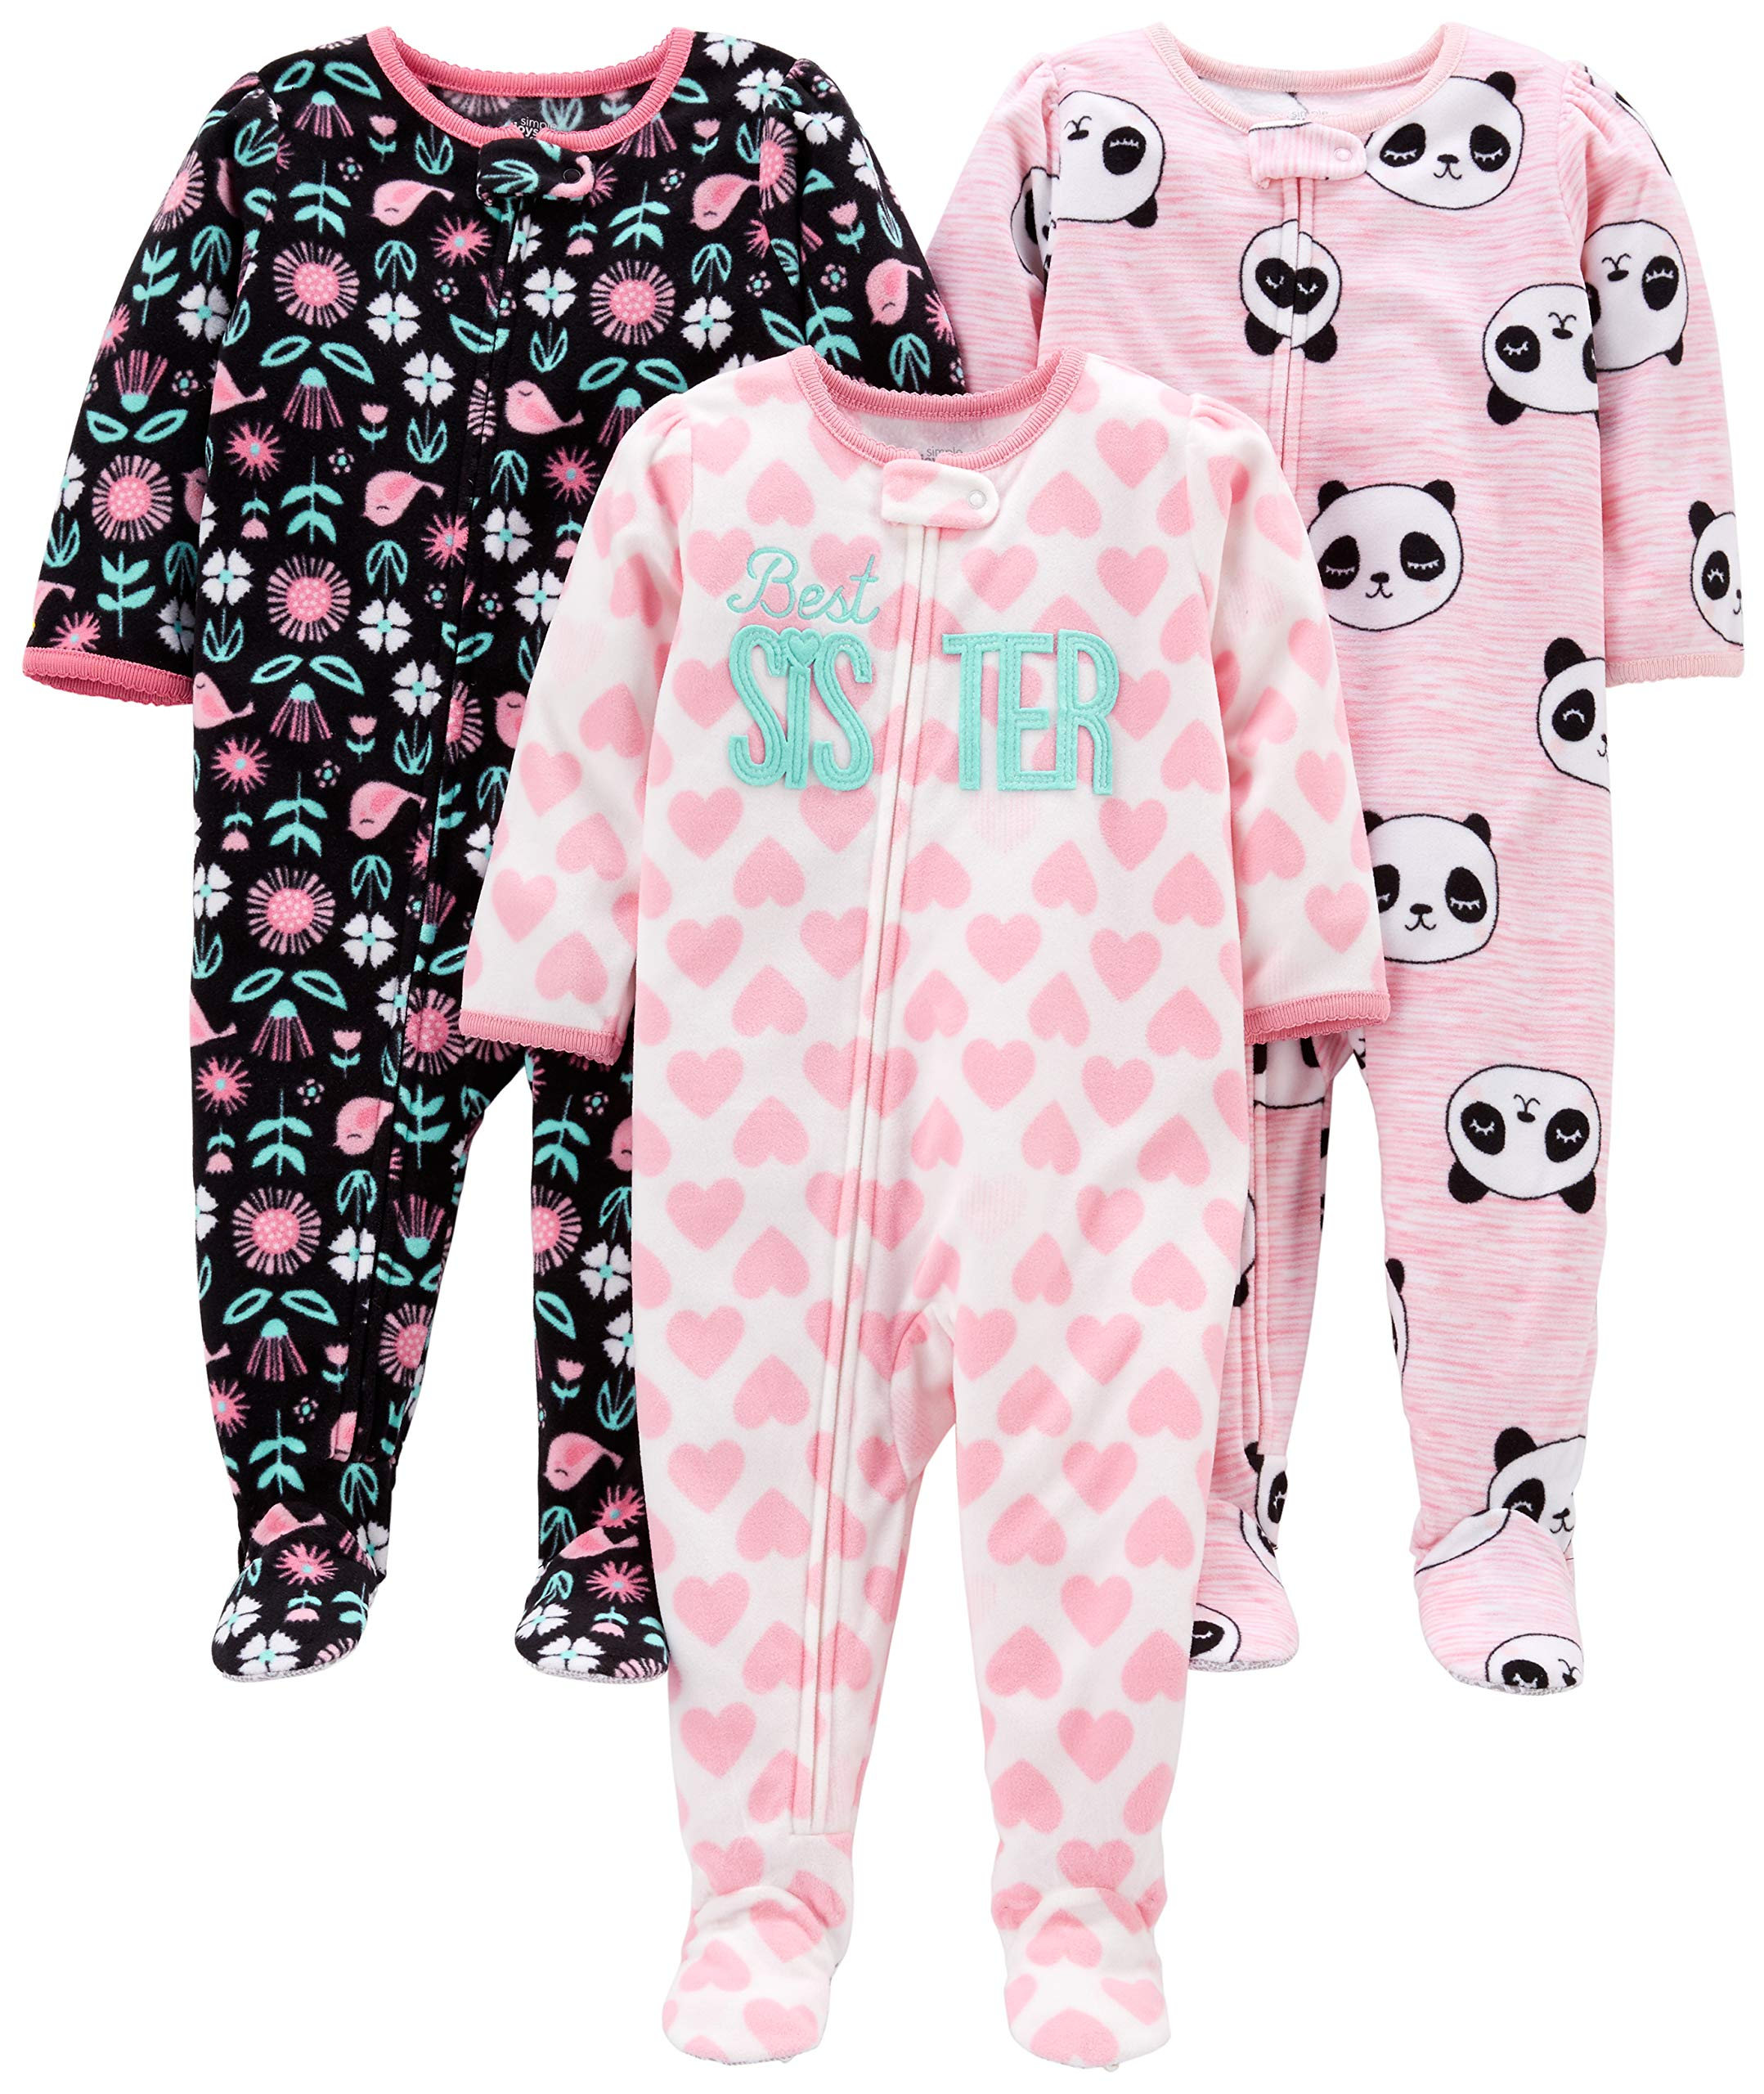 50e043d3ff5d Simple Joys by Carter's Girls' 3-Pack Loose Fit Flame Resistant Fleece  Footed Pajamas, Sister/Panda/Floral, 12 Months